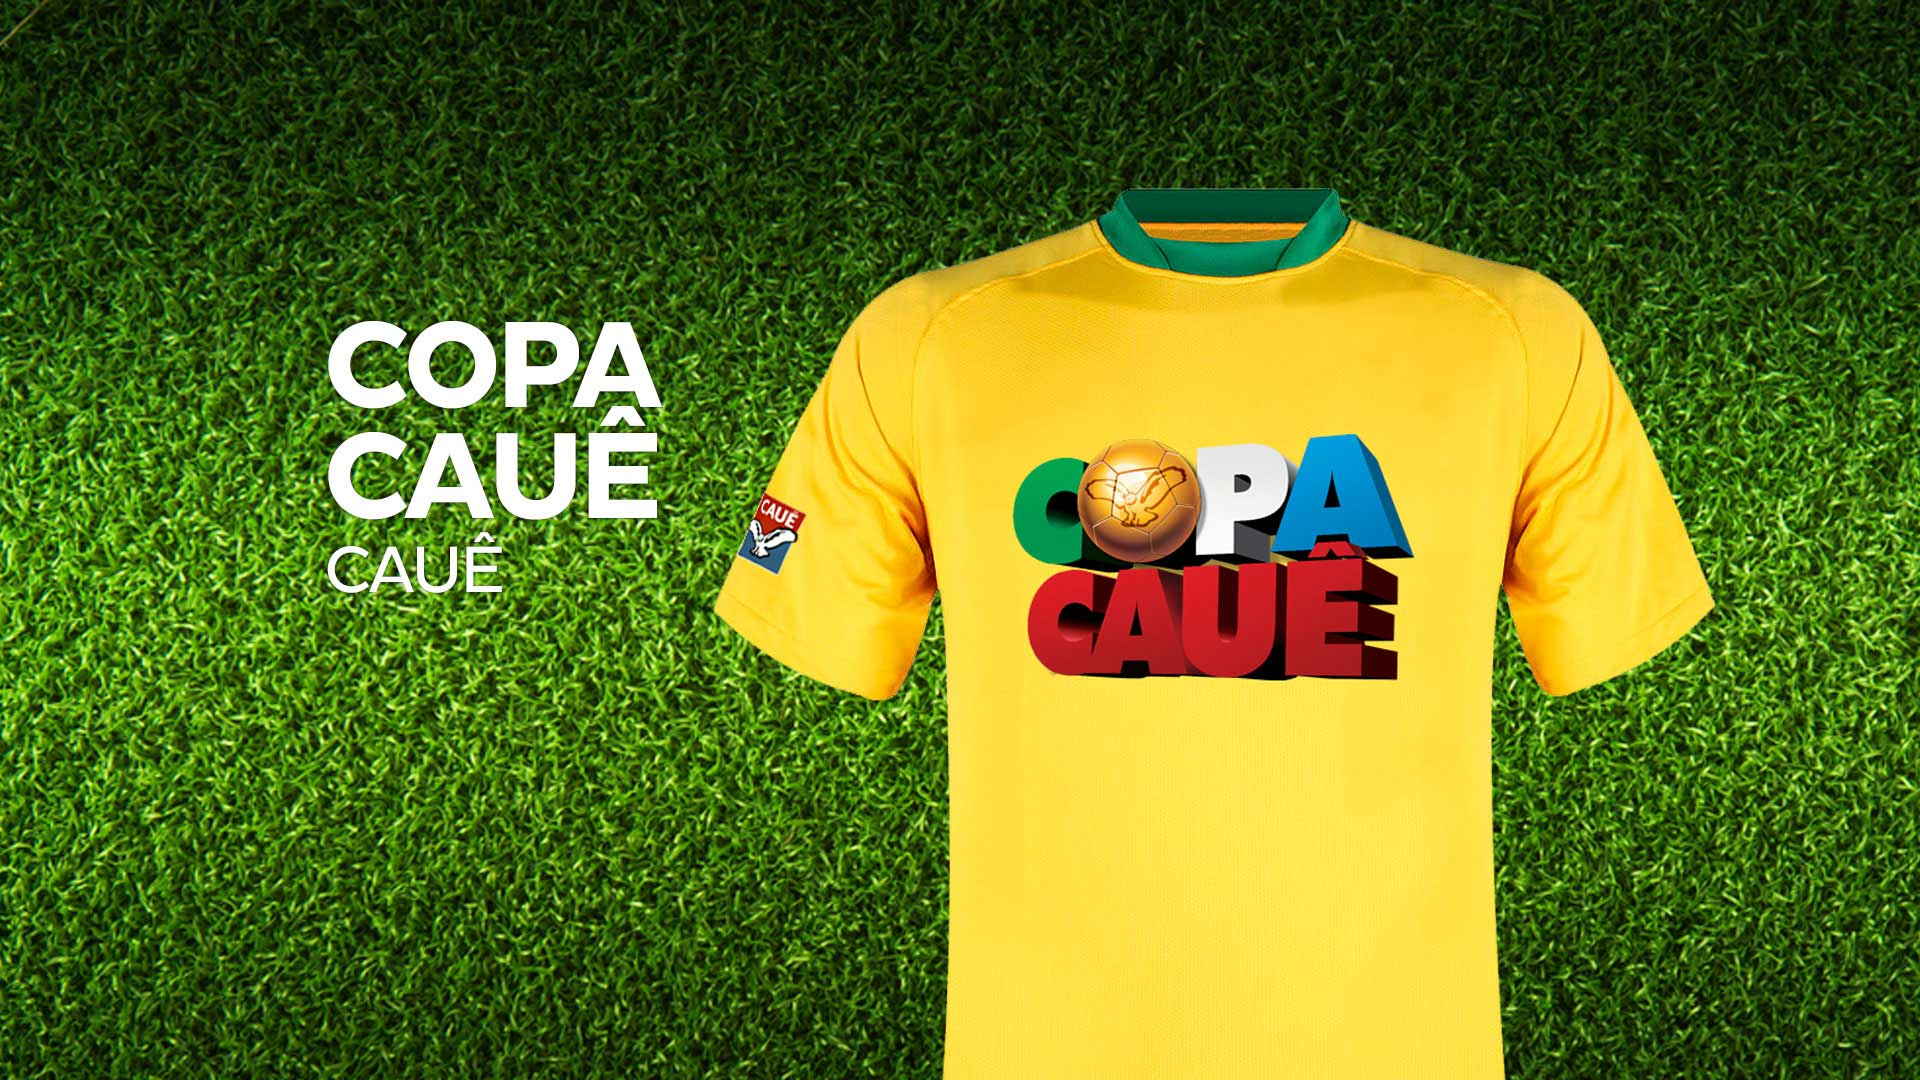 Case Intercement: Copa Cauê